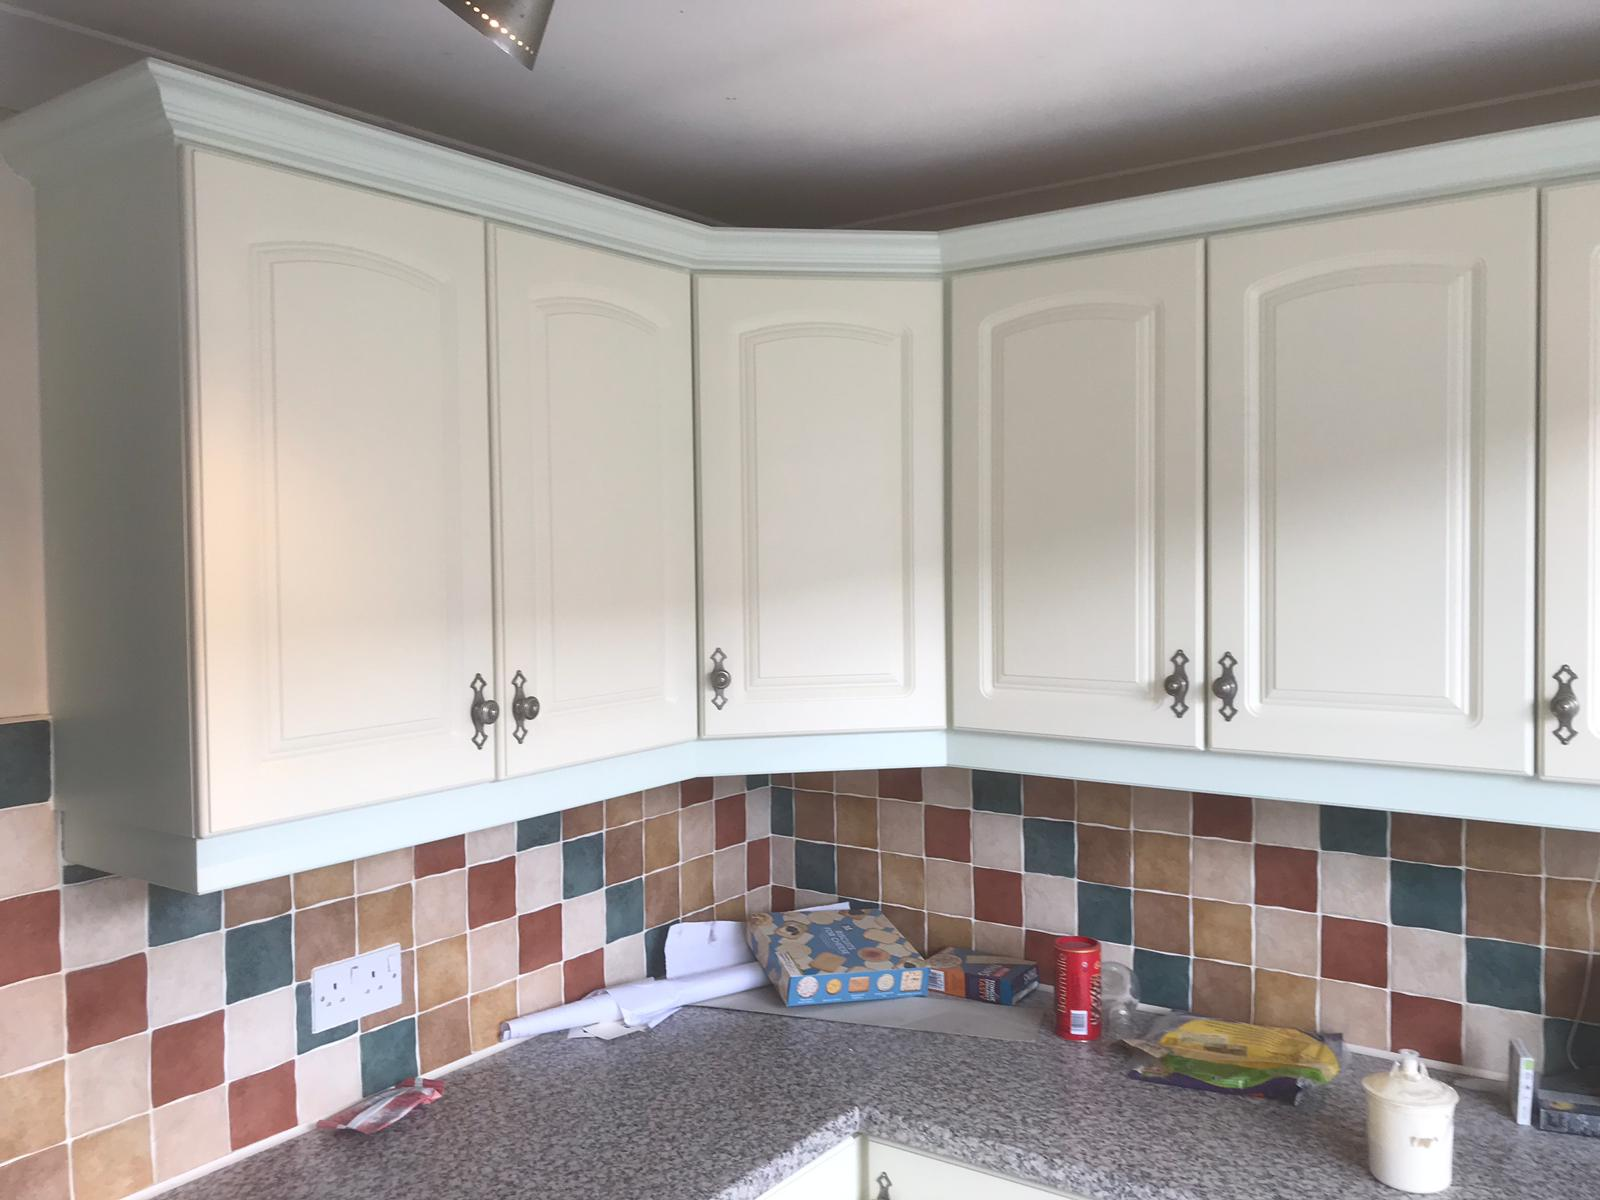 Kitchen Renovations Buy New Or Save Time And Money And Spray Your Existing Units Neil Walton Decorating